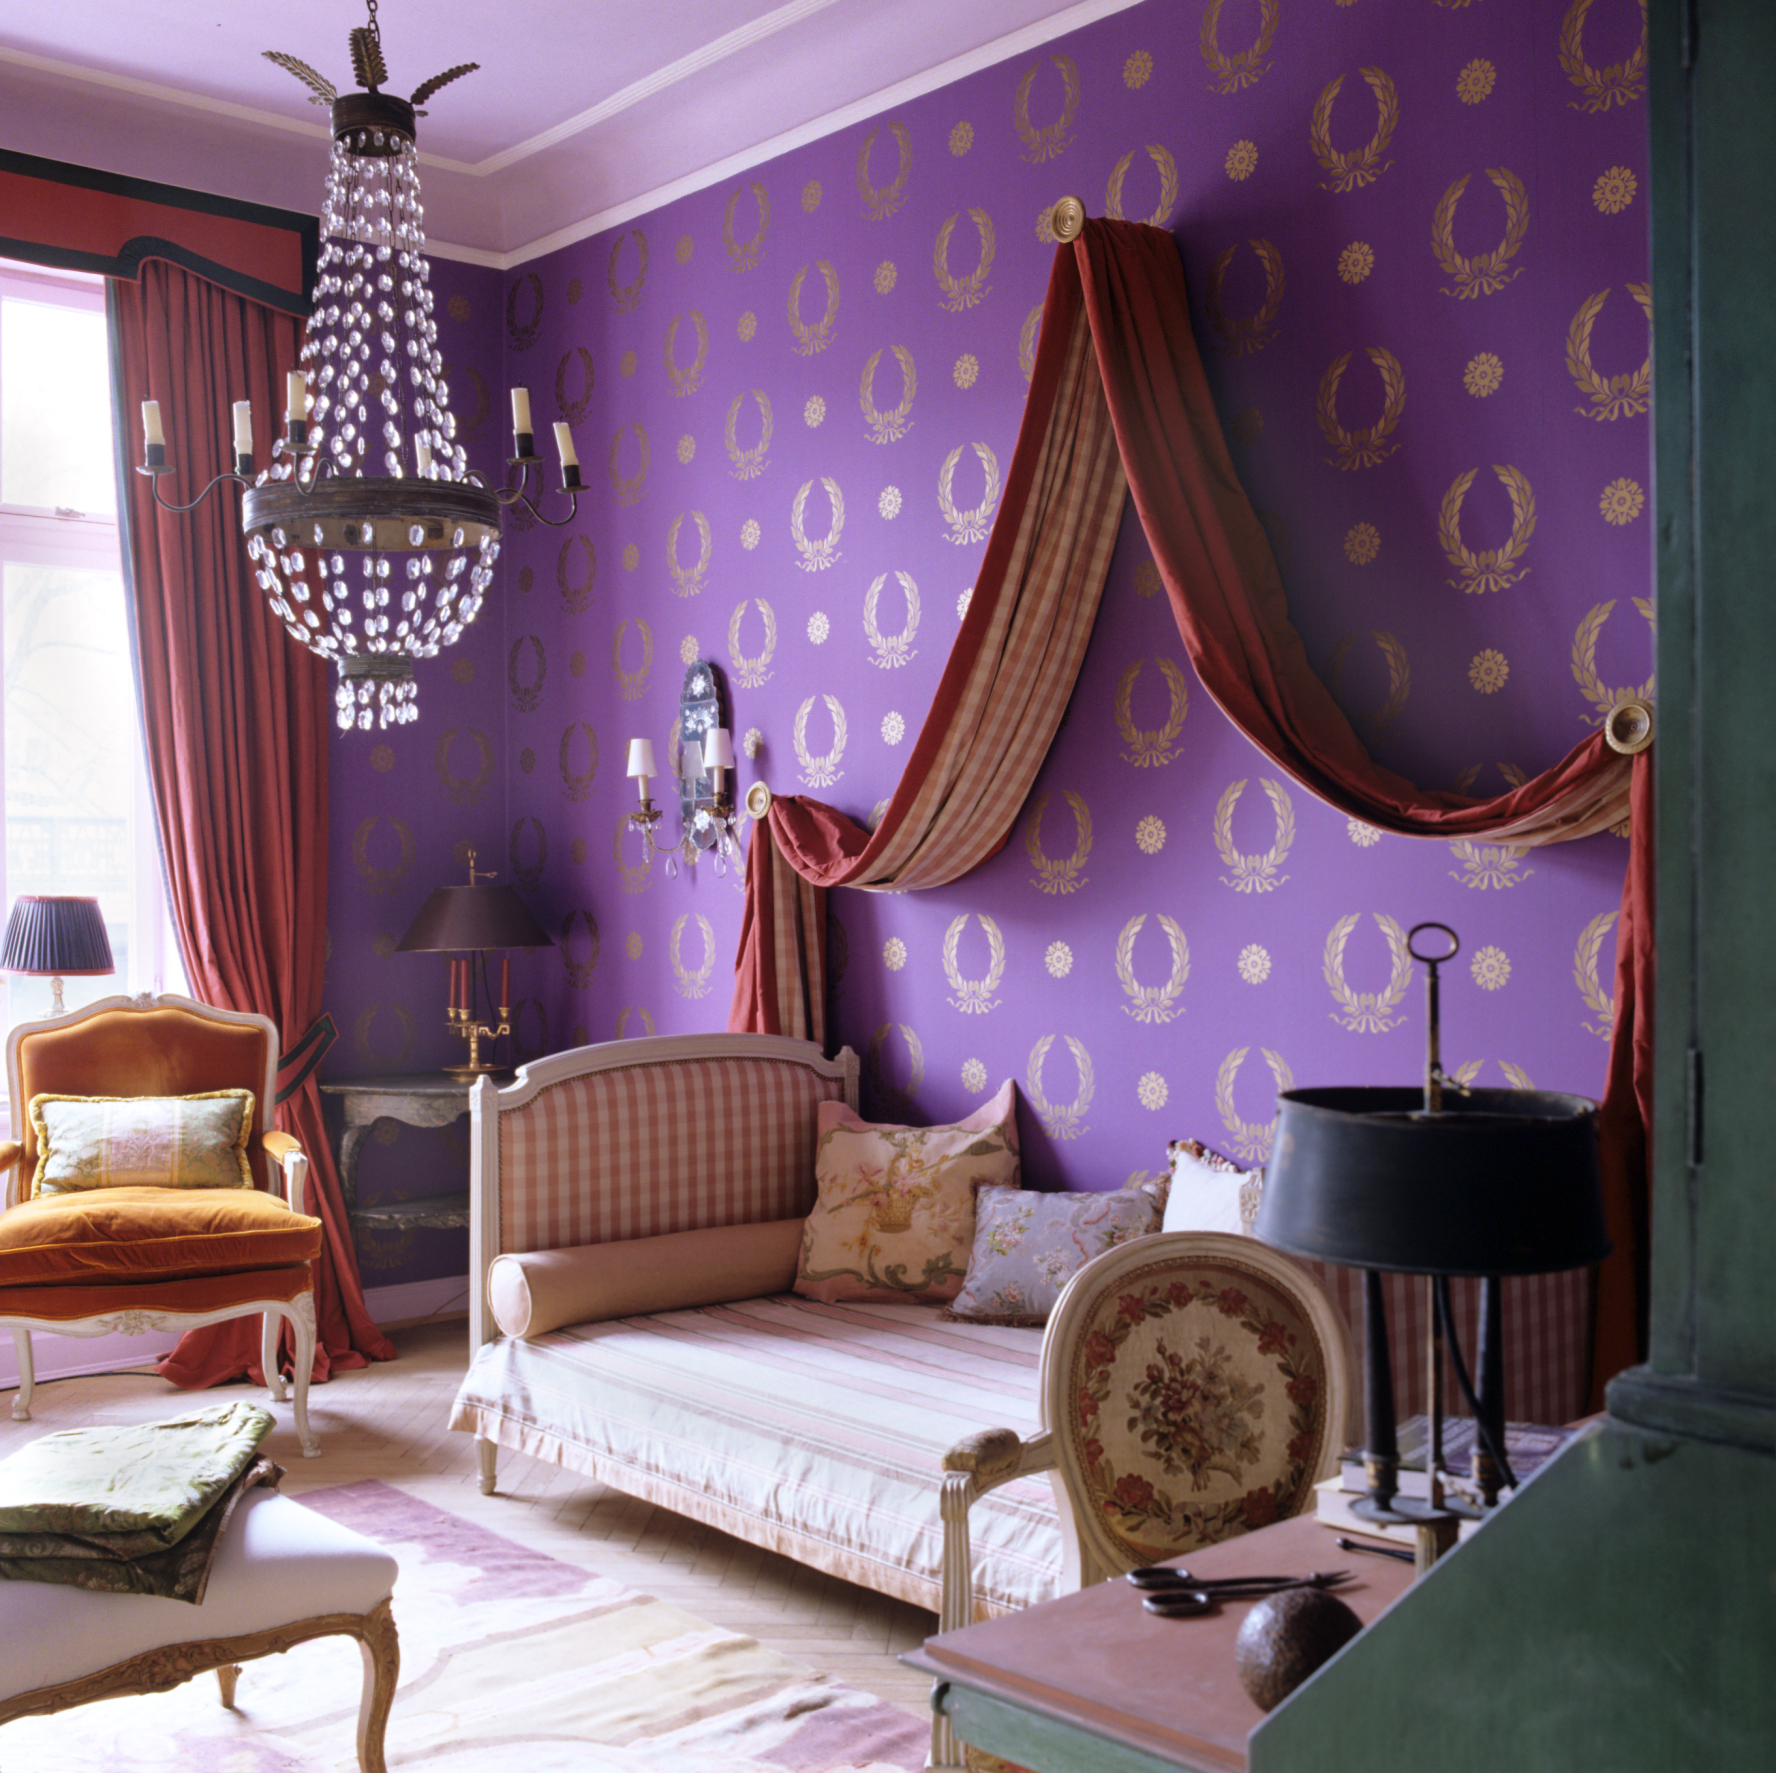 1900s Hamburg apartment decorated with patterned wallpaper and 18th century furniture